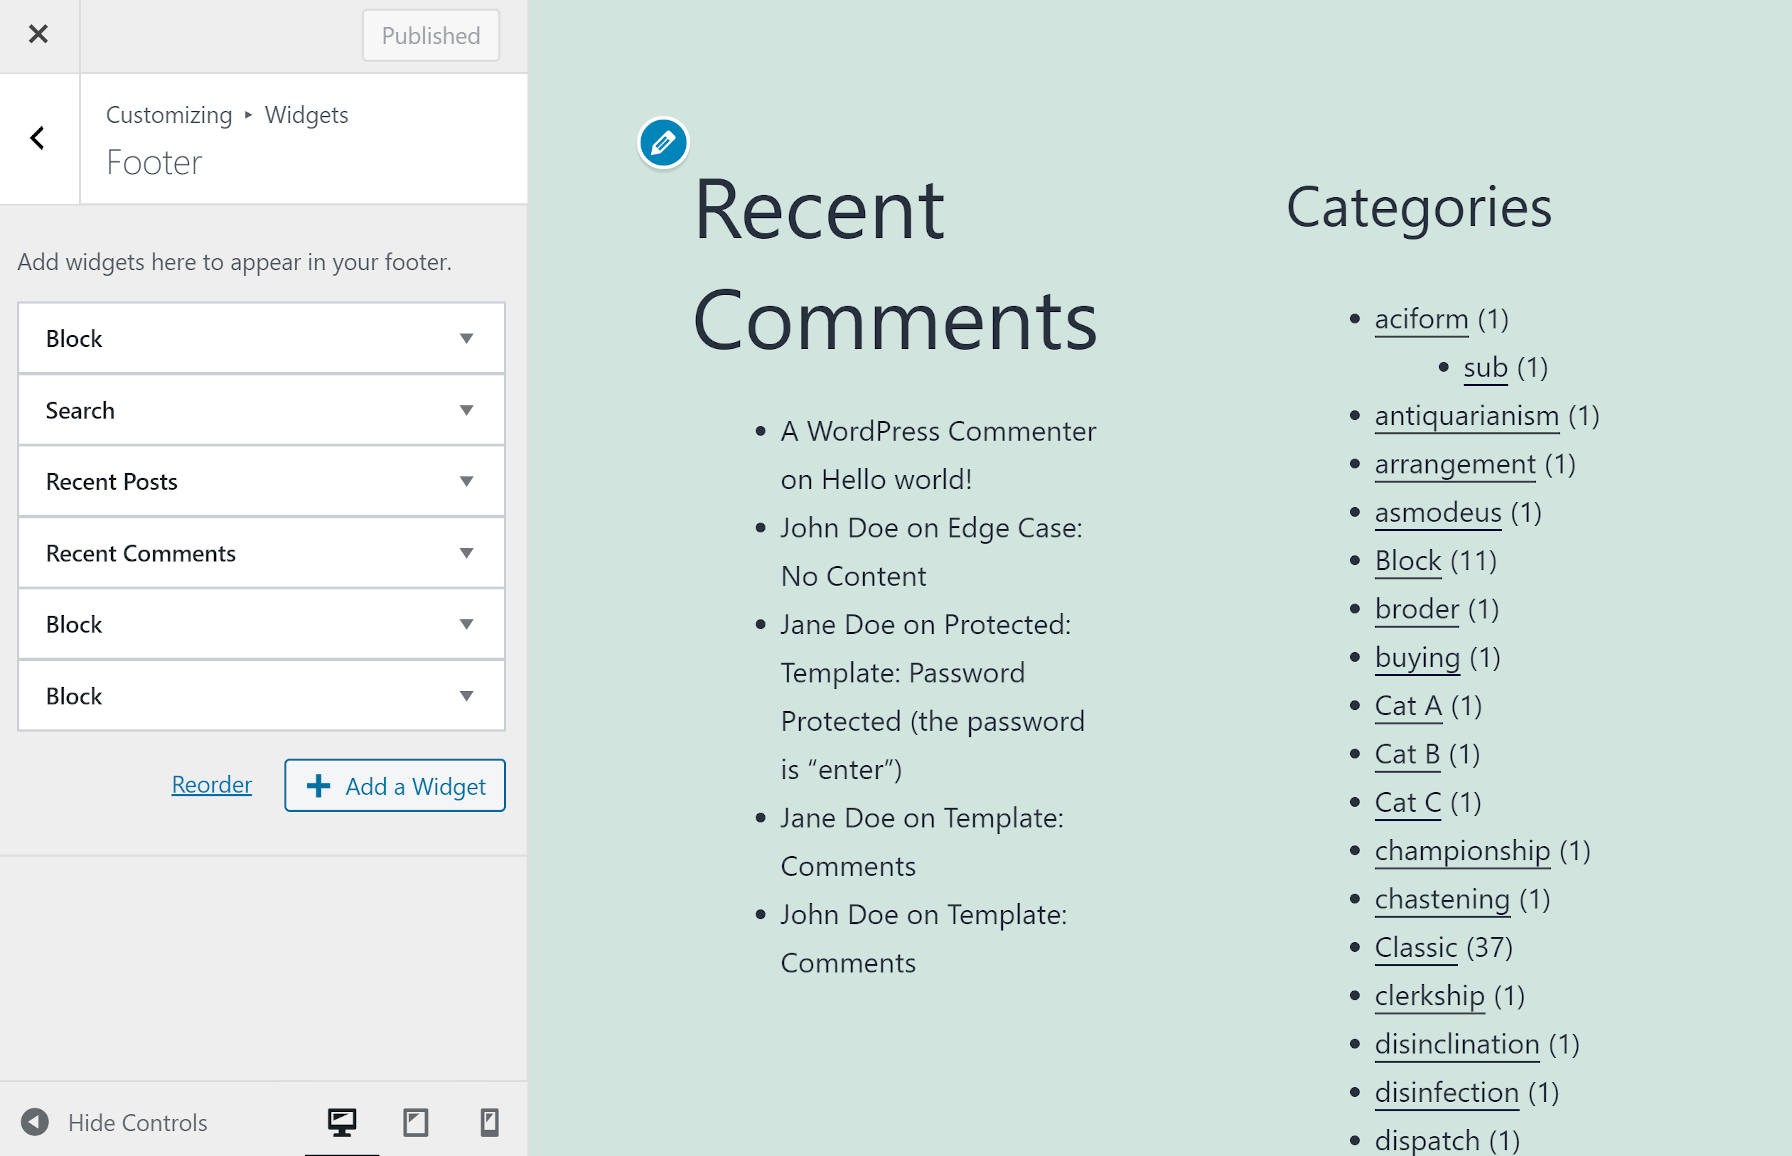 Widgets panel in the WordPress customizer.